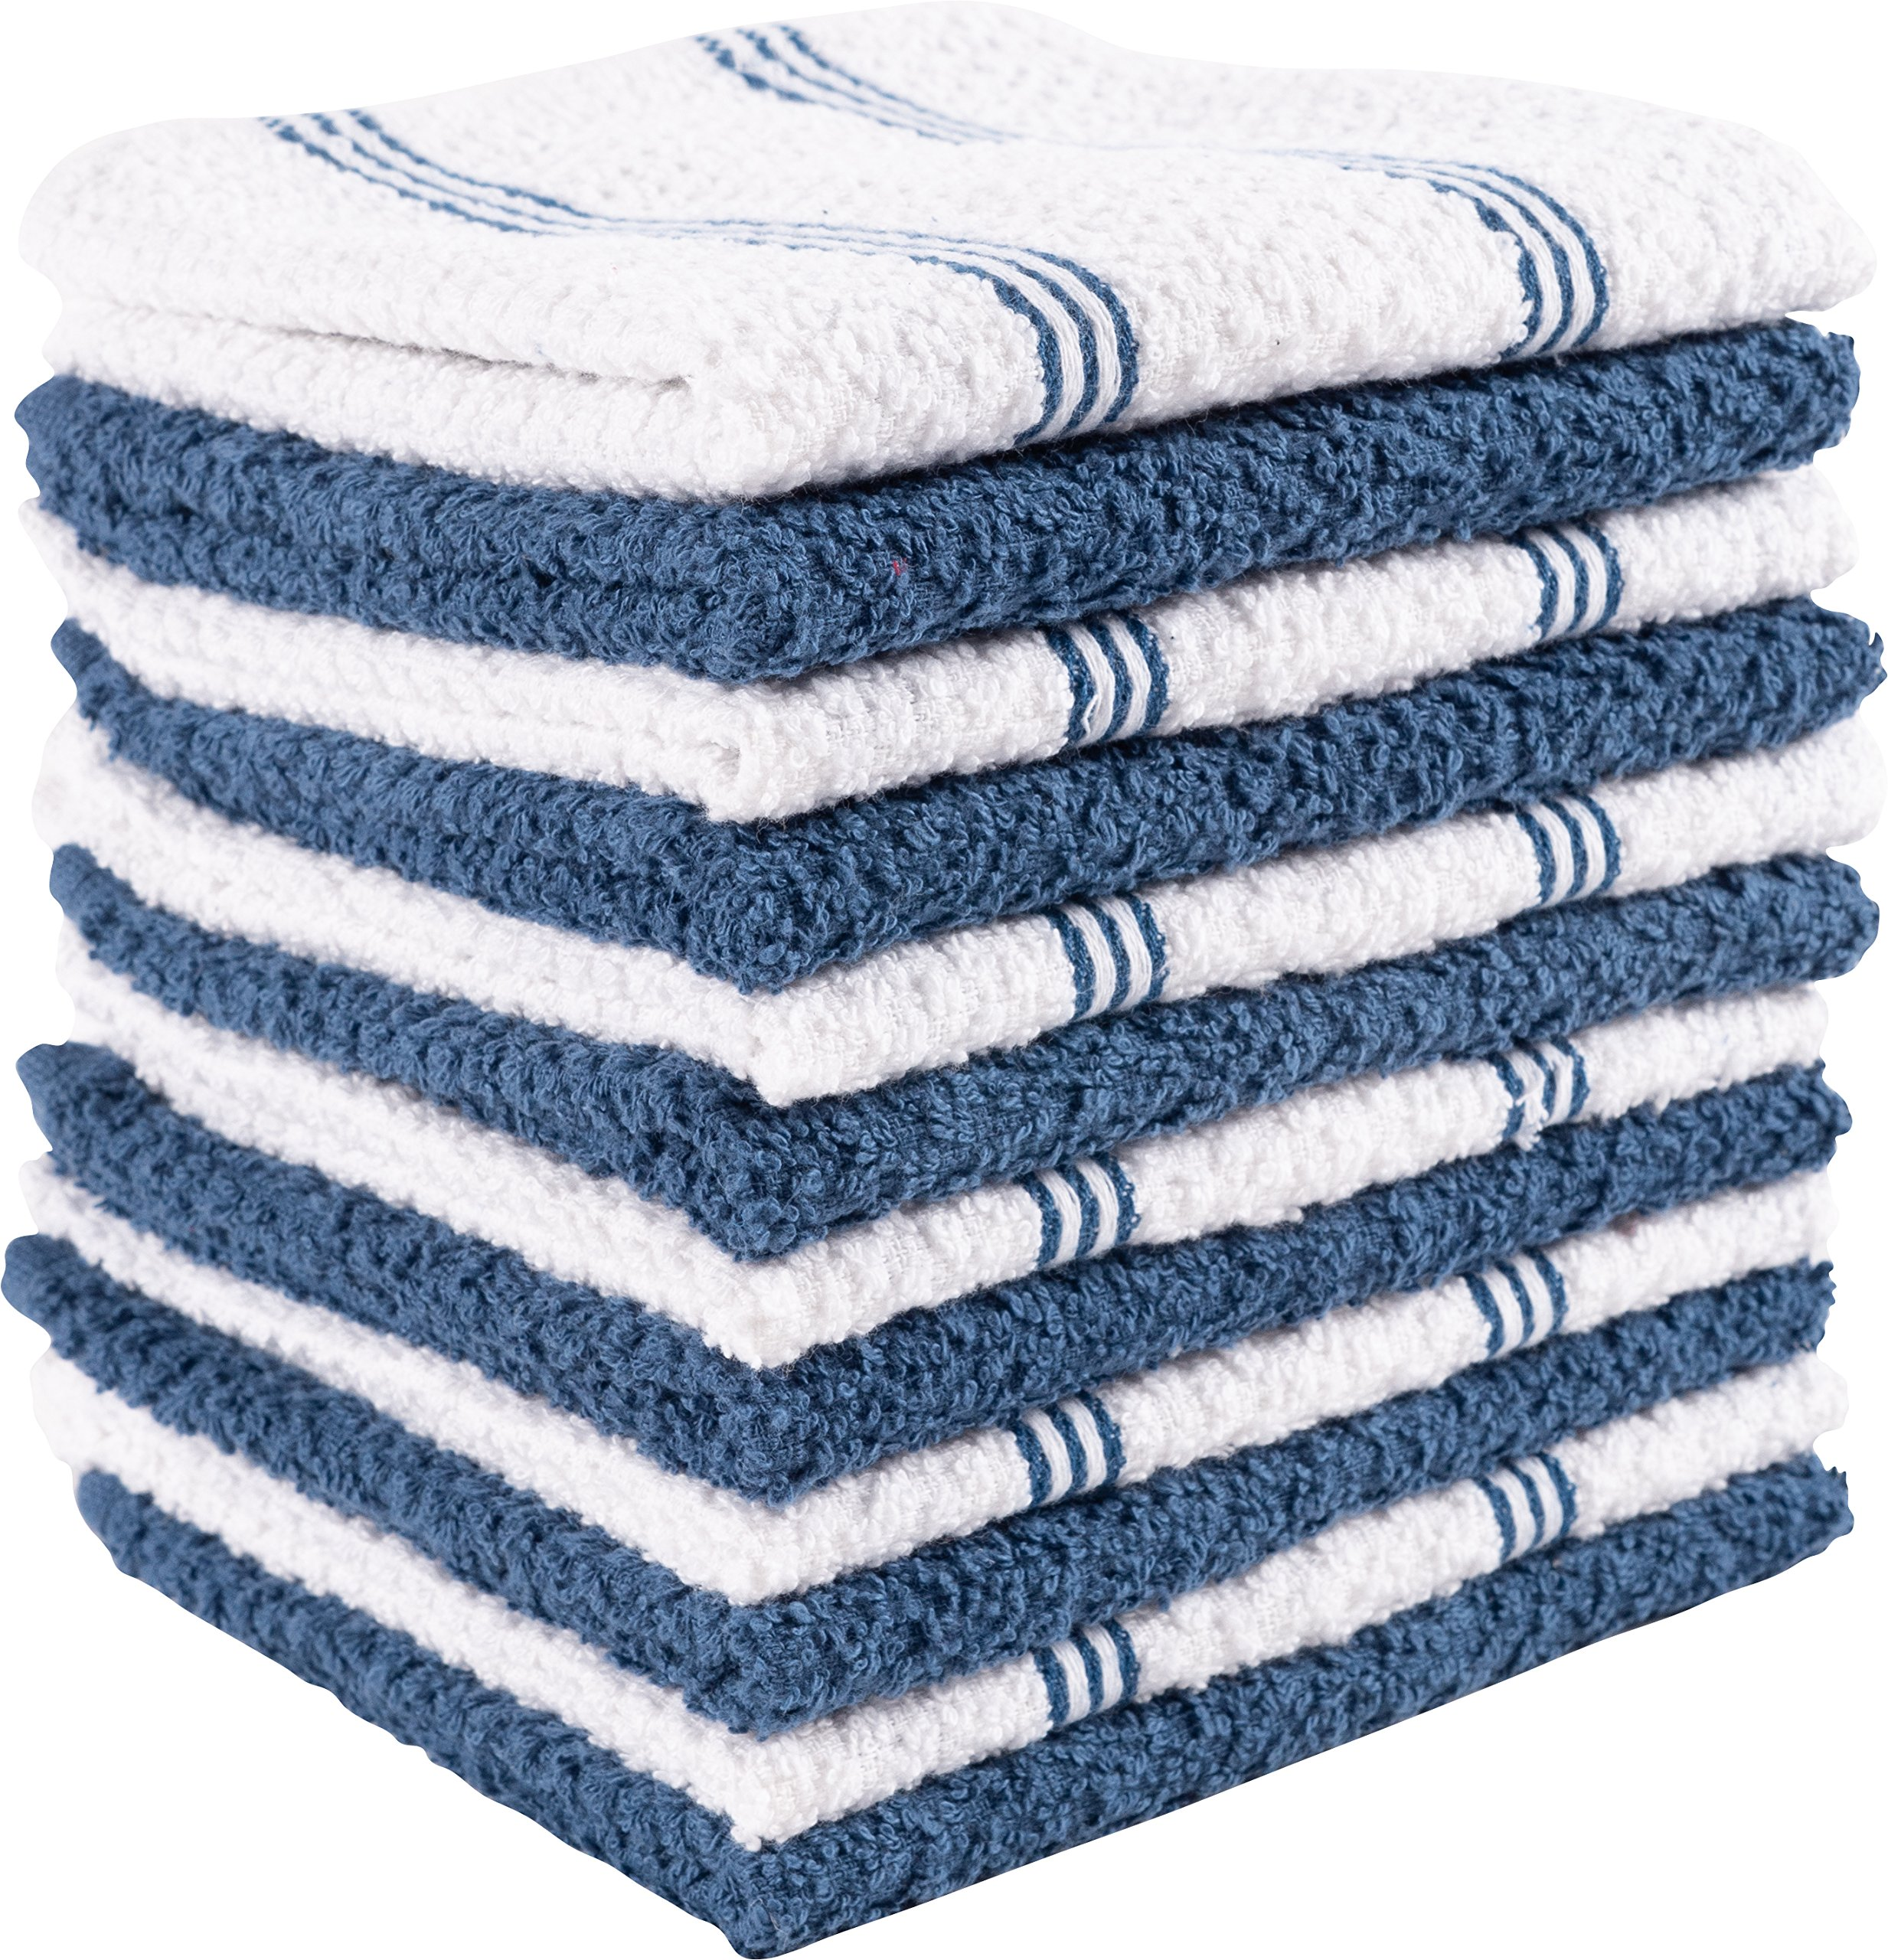 KAF Home Pantry Piedmont Dish Cloths (Set of 12, 12x12 inches), 100% Cotton, Ultra Absorbent Terry Towels - Paris Blue